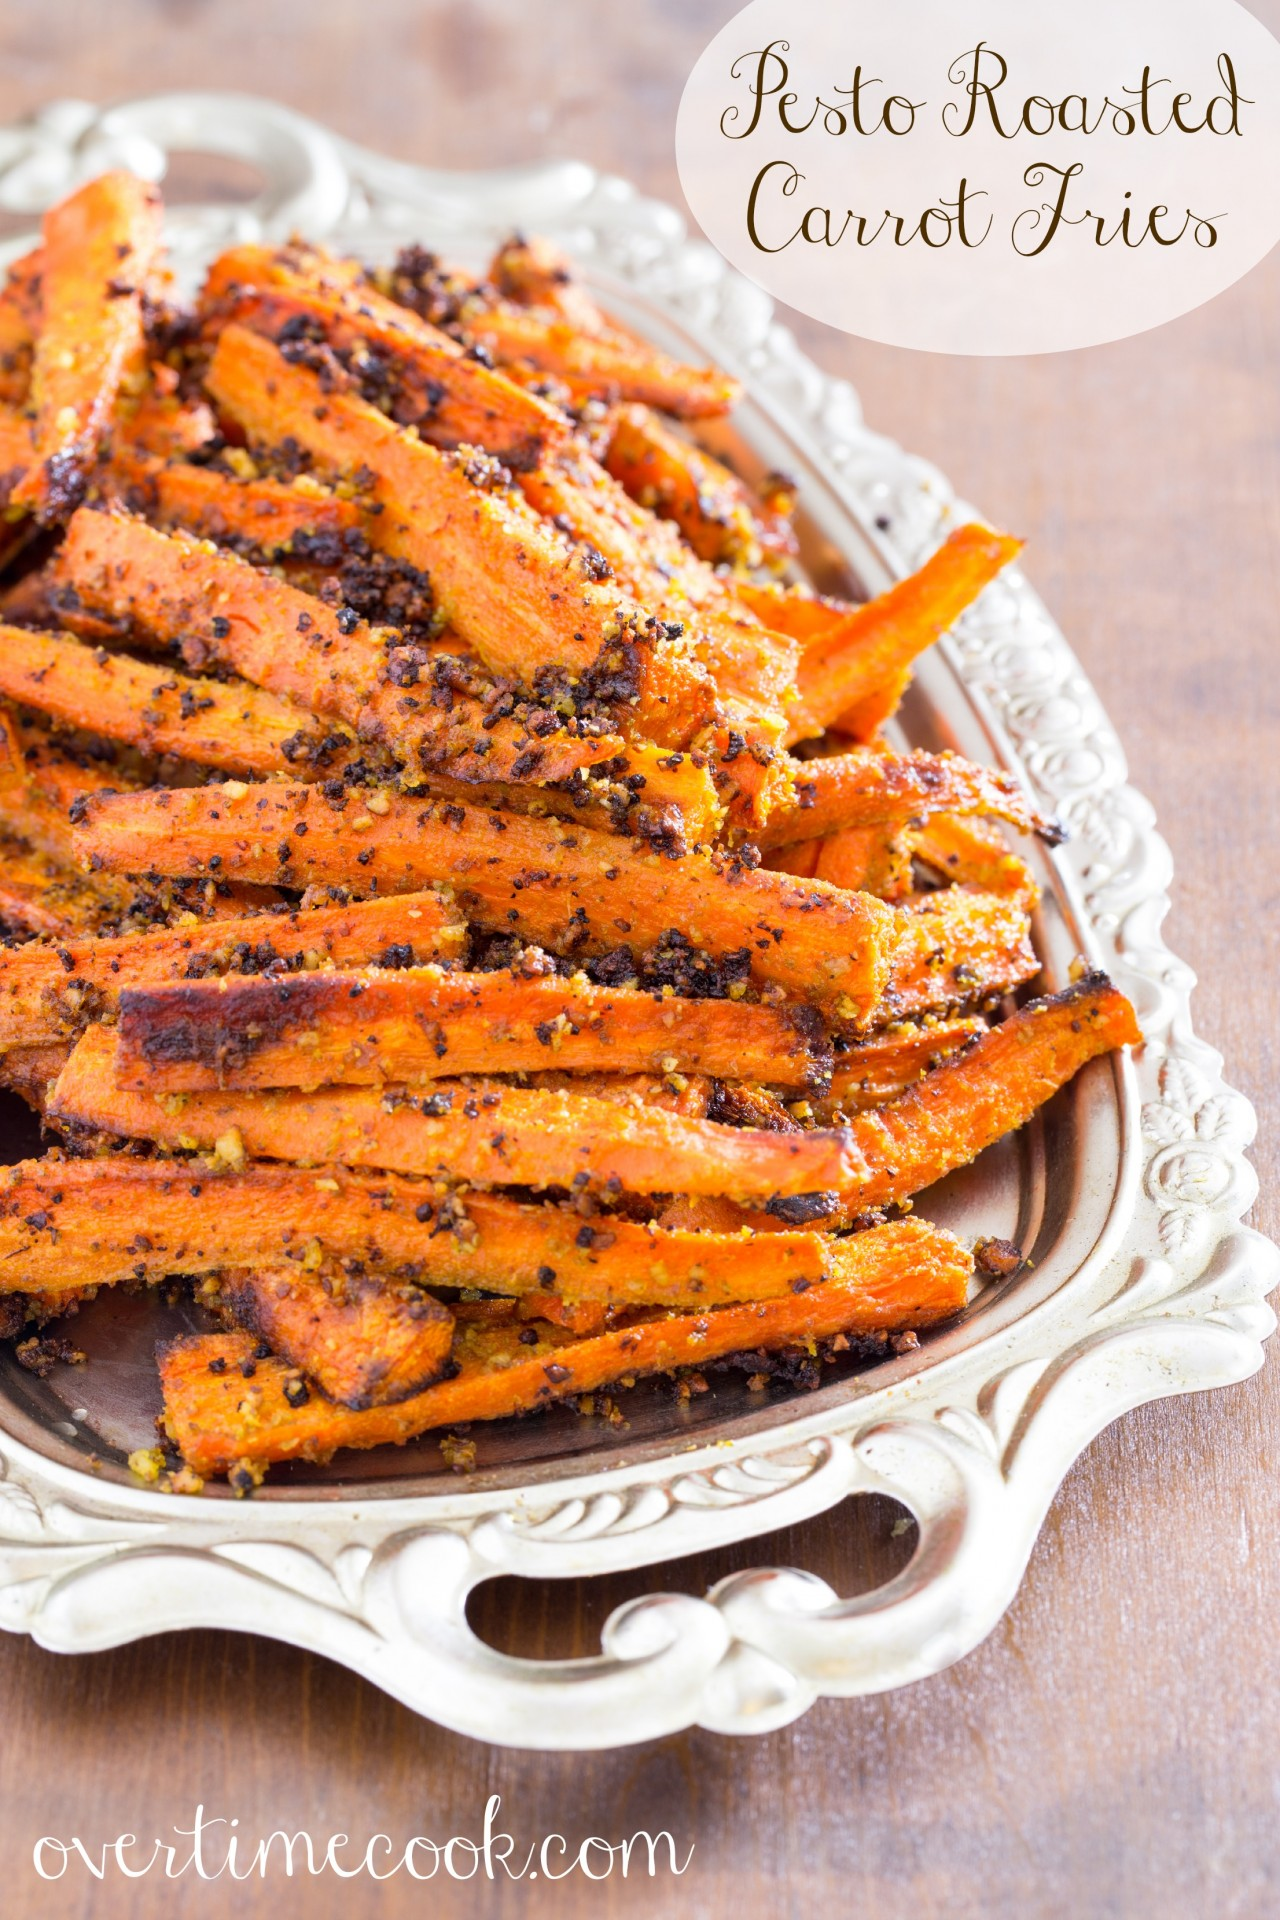 carrot fries carrot fries 1 oven baked carrot fries baked carrot fries ...